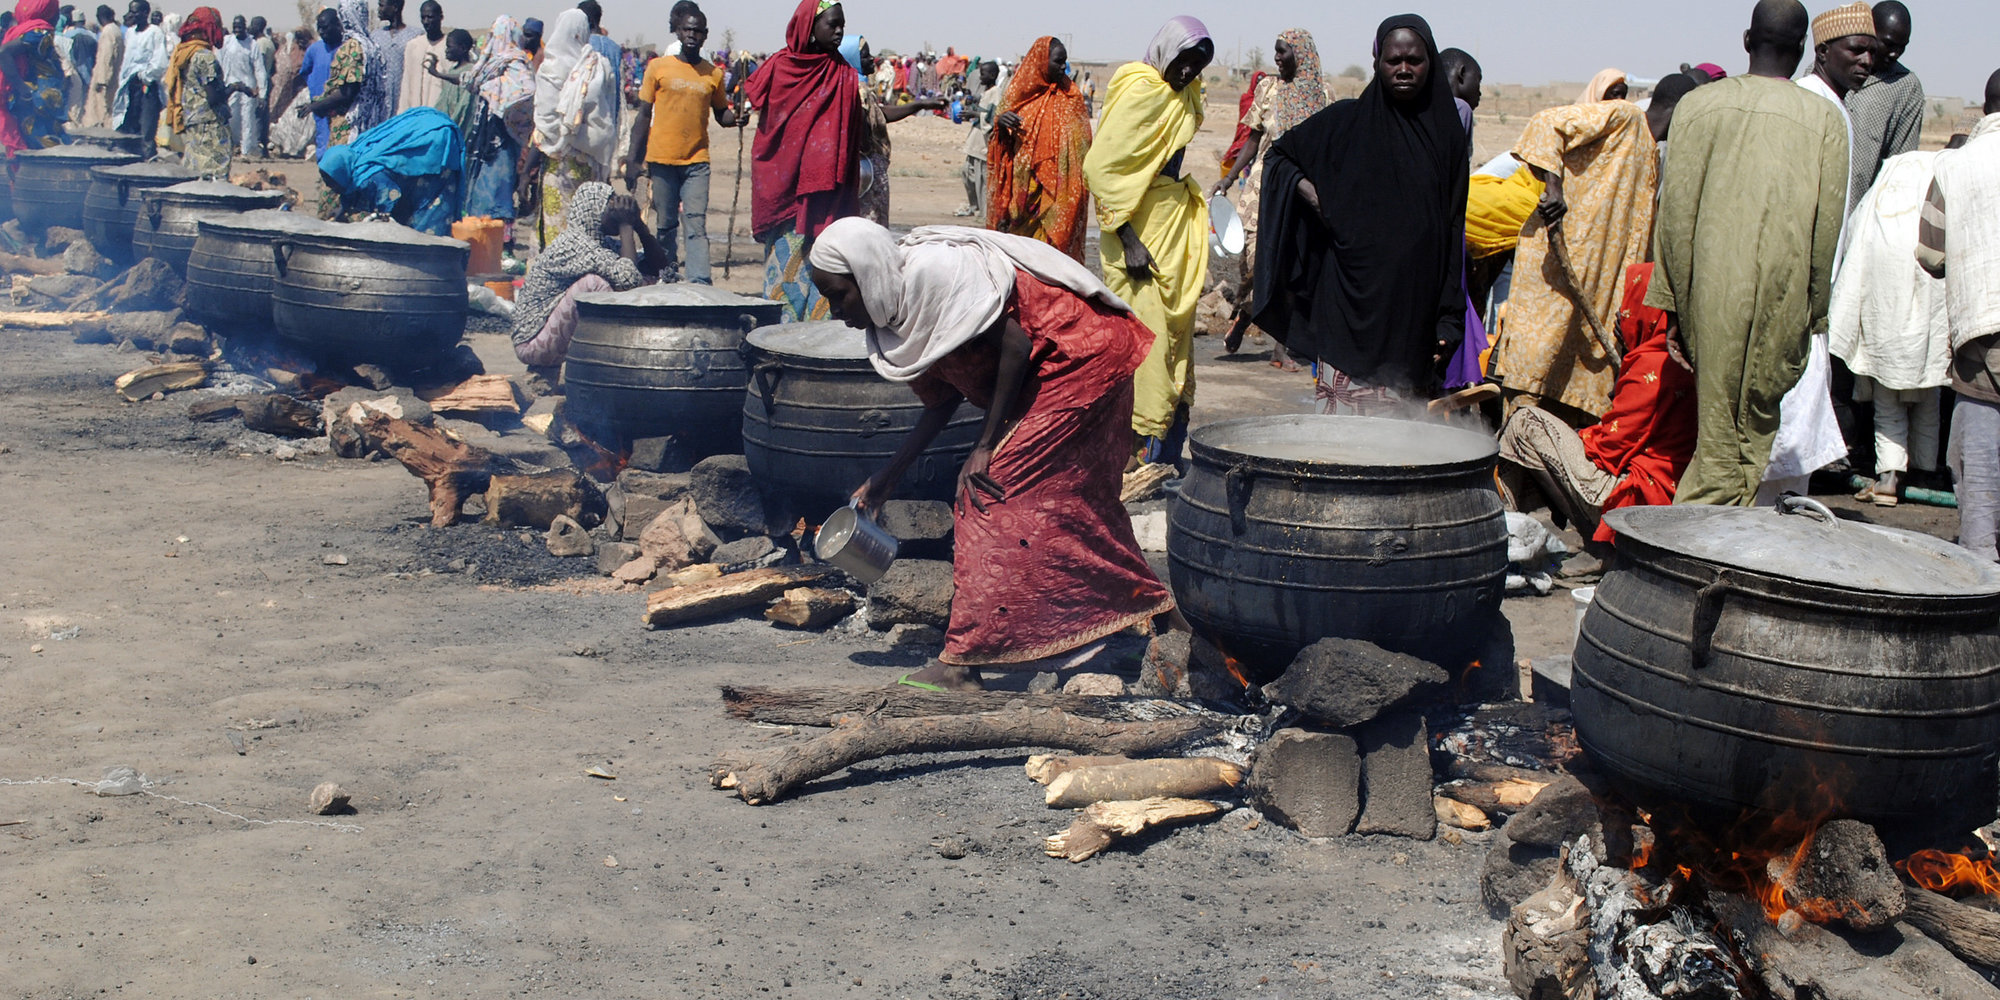 Women cook in pots heated up with firewood at an Internally Displaced Persons (IDP) camp at Dikwa, in Borno State in north-eastern Nigeria, on February 2, 2016. The National Emergency Management Agency in collaboration with Borno State Emergency Management Agency has set up new IDP camps in Ngala, Marte, Bama and Mafa councils to decongest the growing population of IDP camp set up at Dikwa council of Borno State. Nigeria expects many of the 2.1 million people internally displaced by Boko Haram's insurgency to return home in the coming year, amid claims the Islamists are in disarray and a spent force. / AFP / STRINGER        (Photo credit should read STRINGER/AFP/Getty Images)